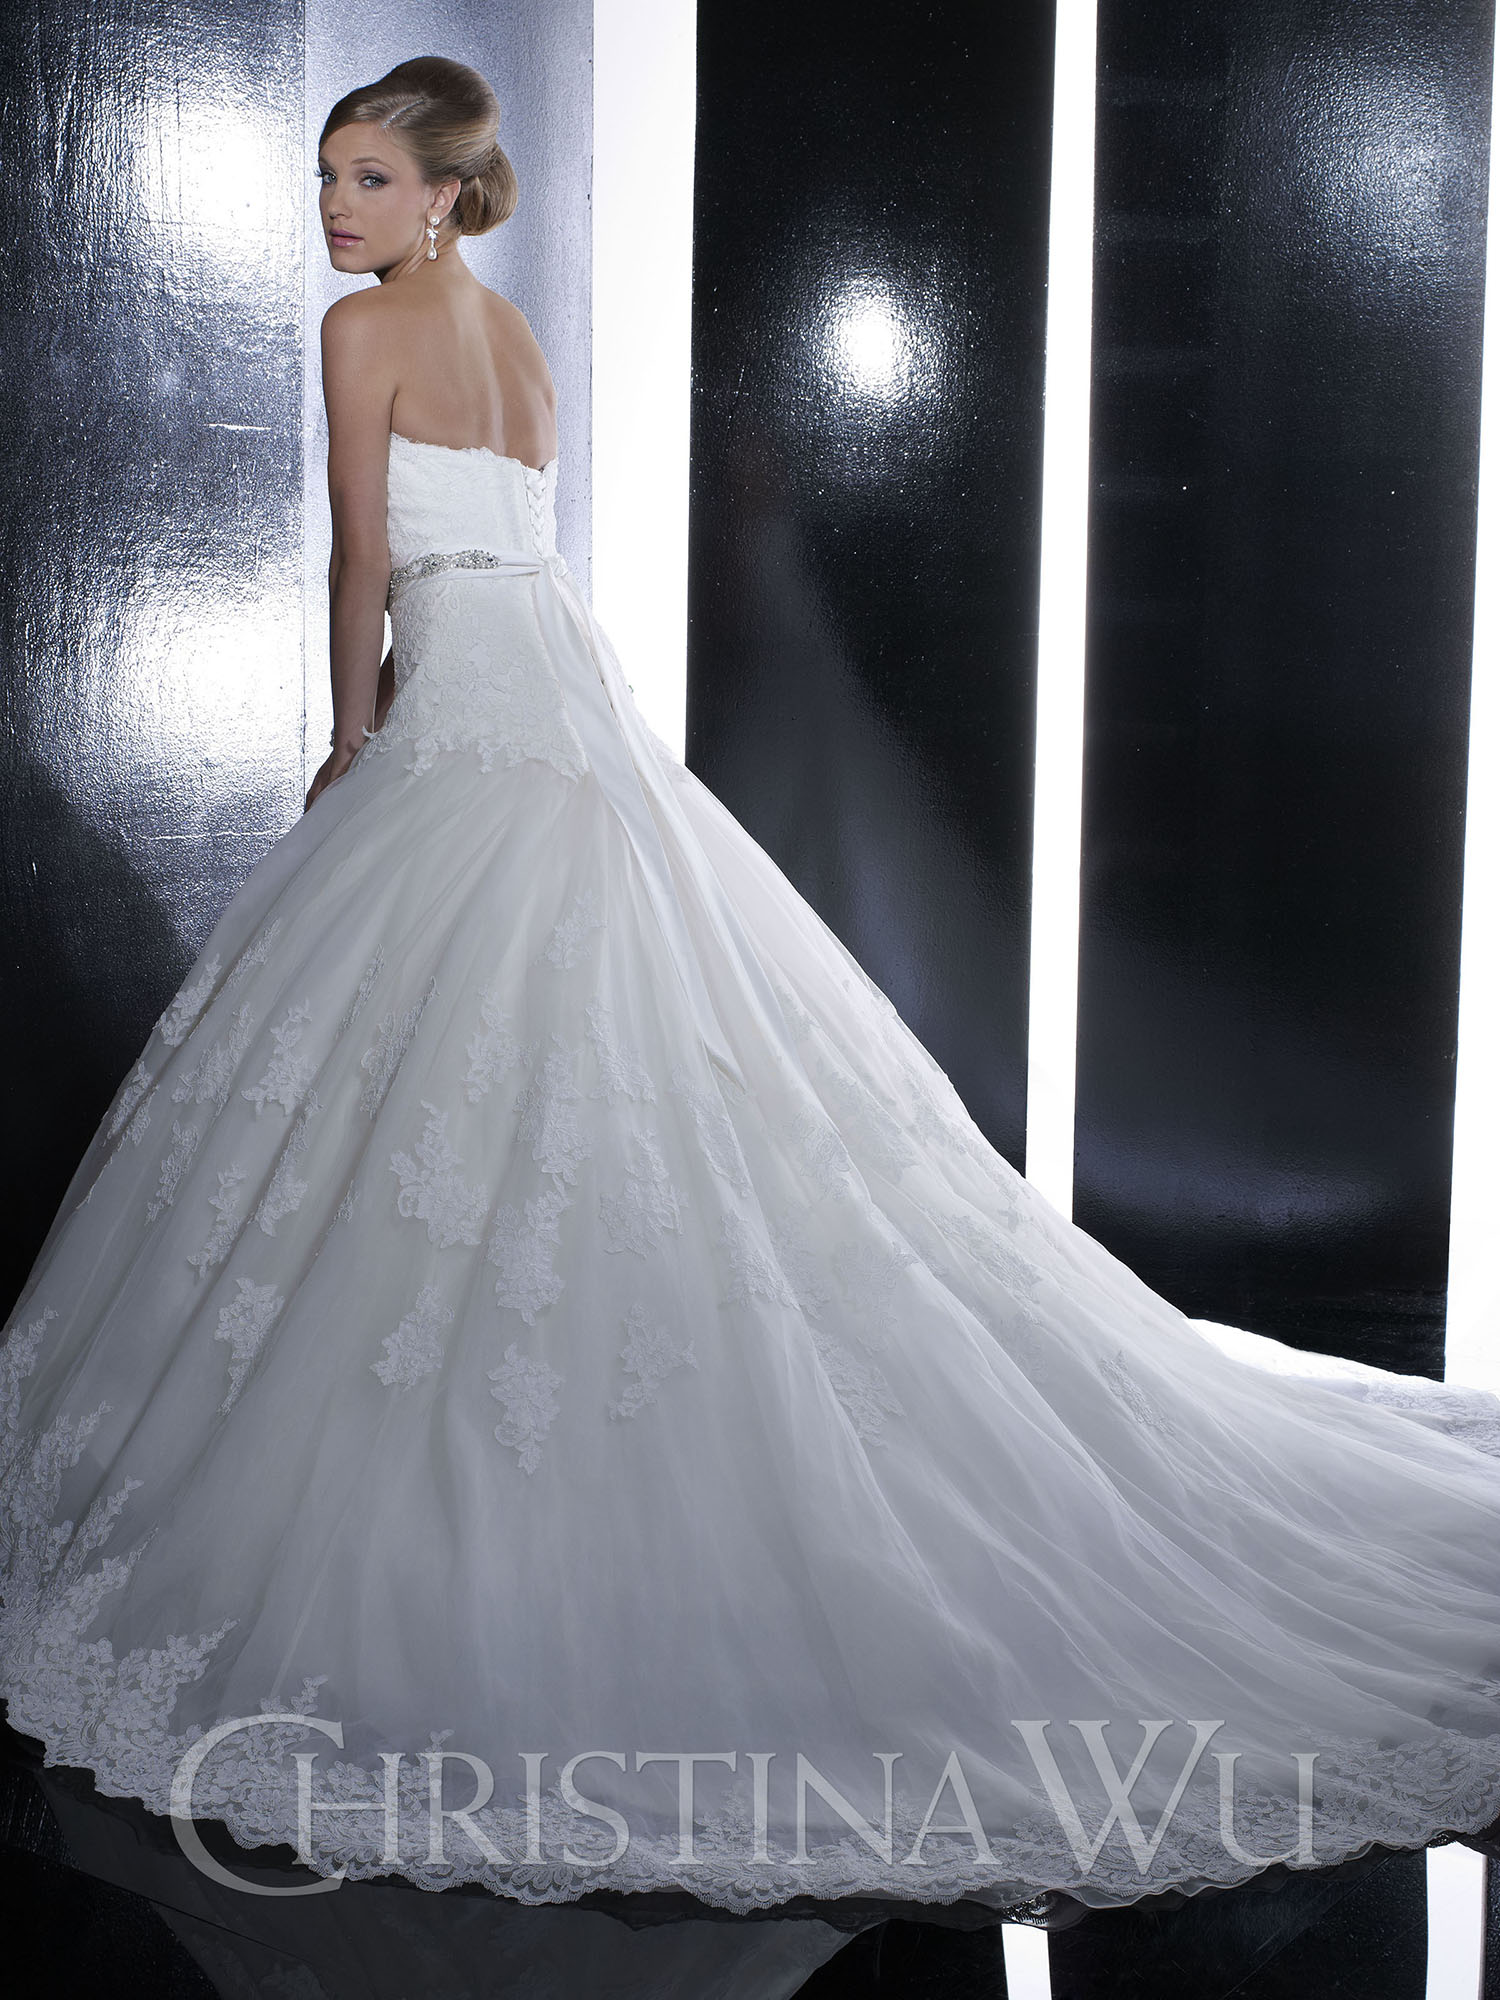 Christina Wu Bridal Collections Featured at Trunk Show Events